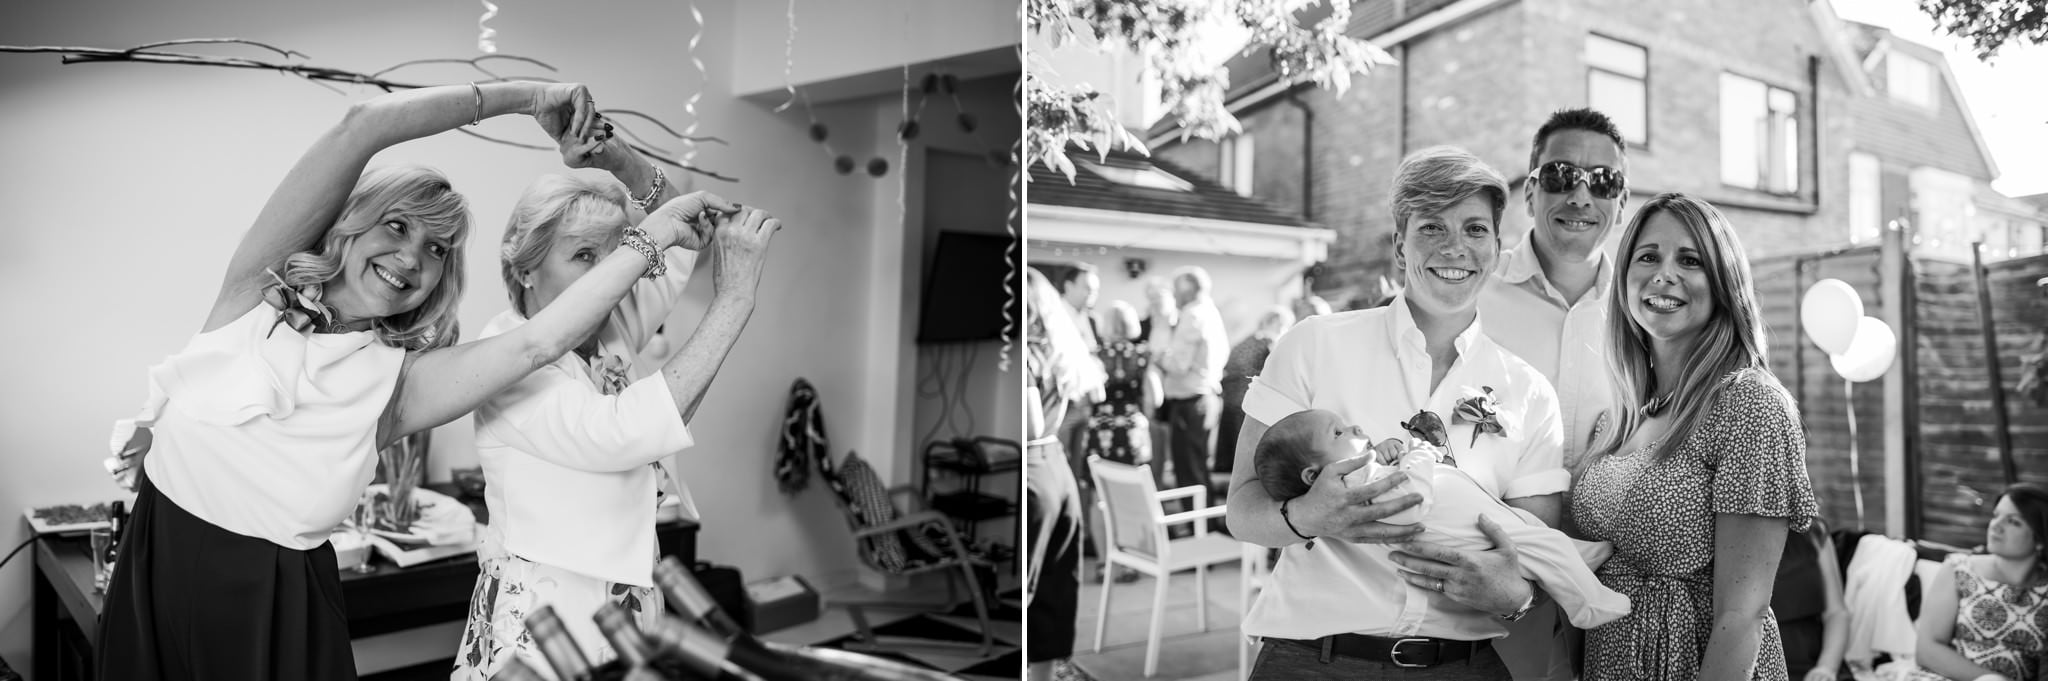 Wedding photography at Dorset garden wedding